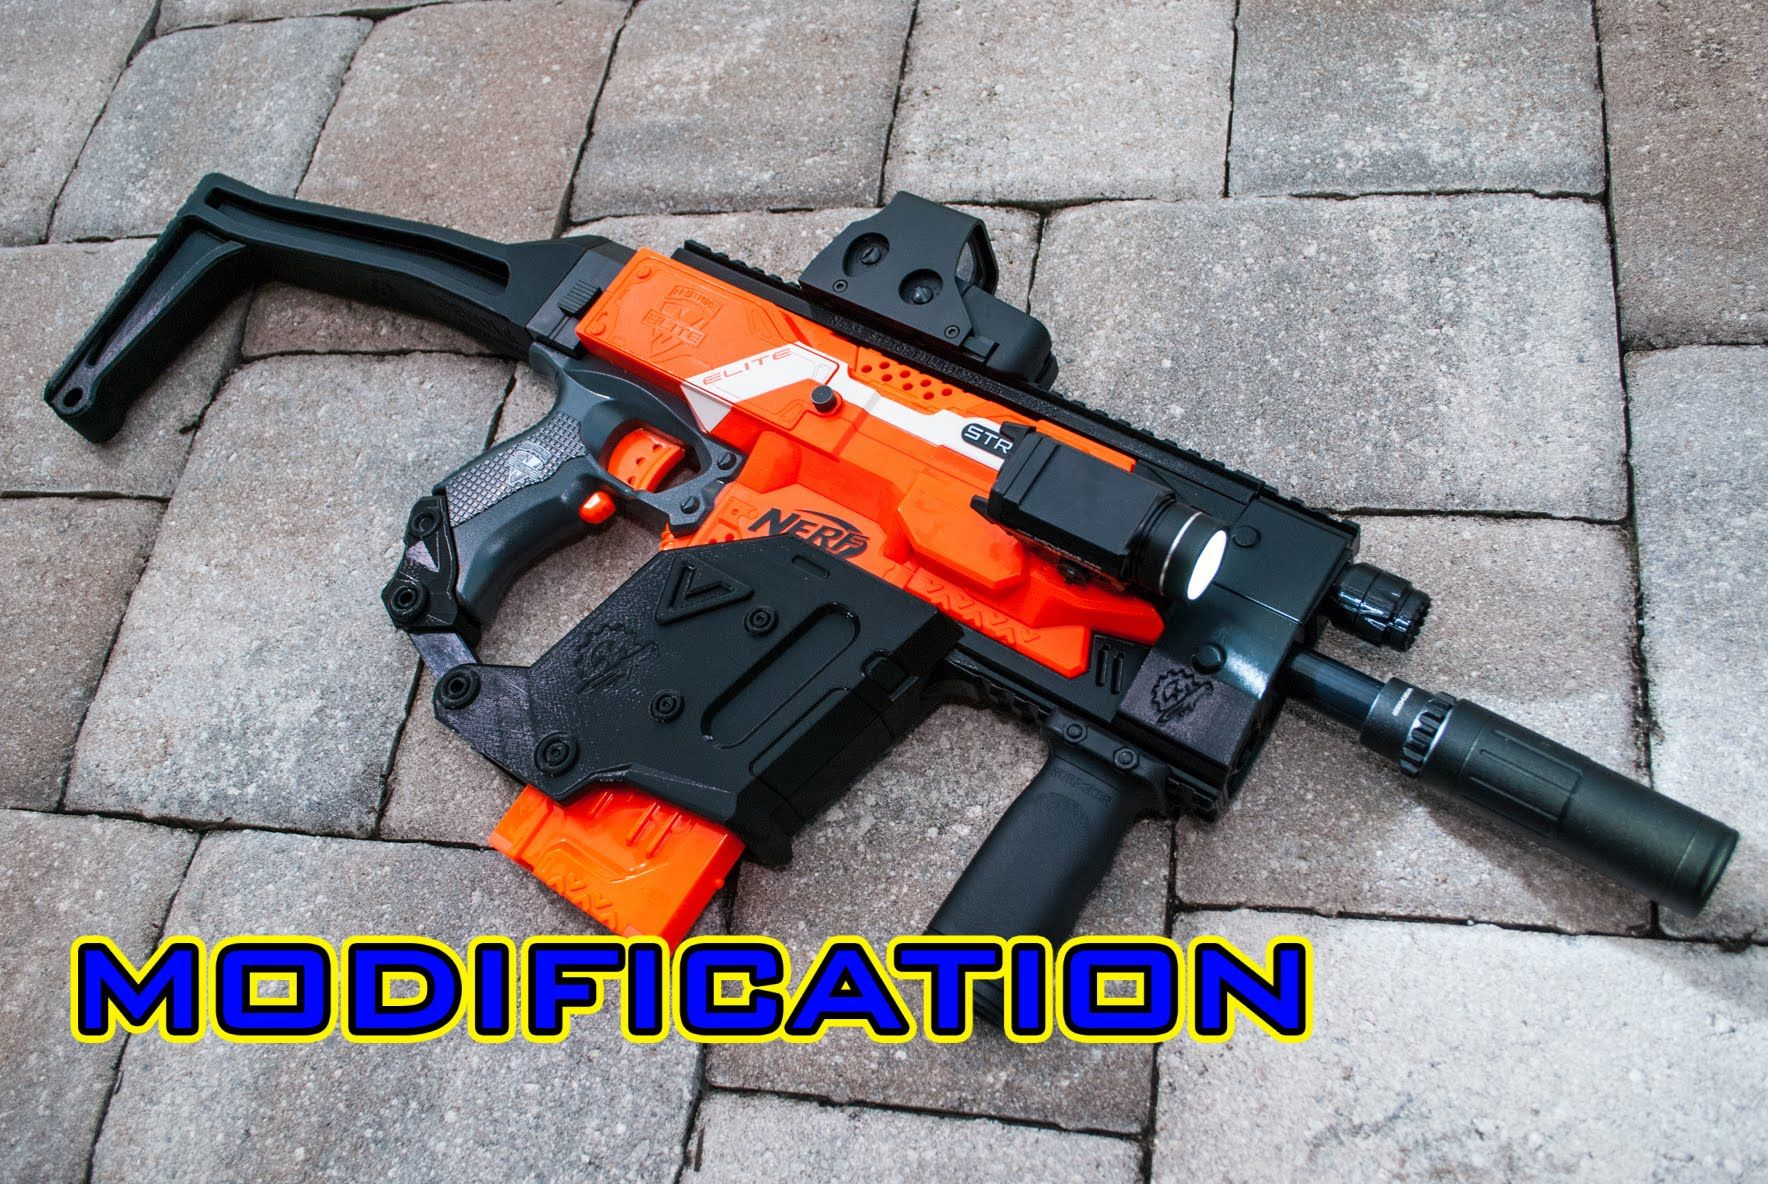 #VR #VRGames #Drone #Gaming [MOD] Nerf Stryfe | KRISS Vector 3D Printed  Kit! #3D, assemble, assembly, Awesome, best, Blaster, Blasters, cool, coop,  coop772, ...